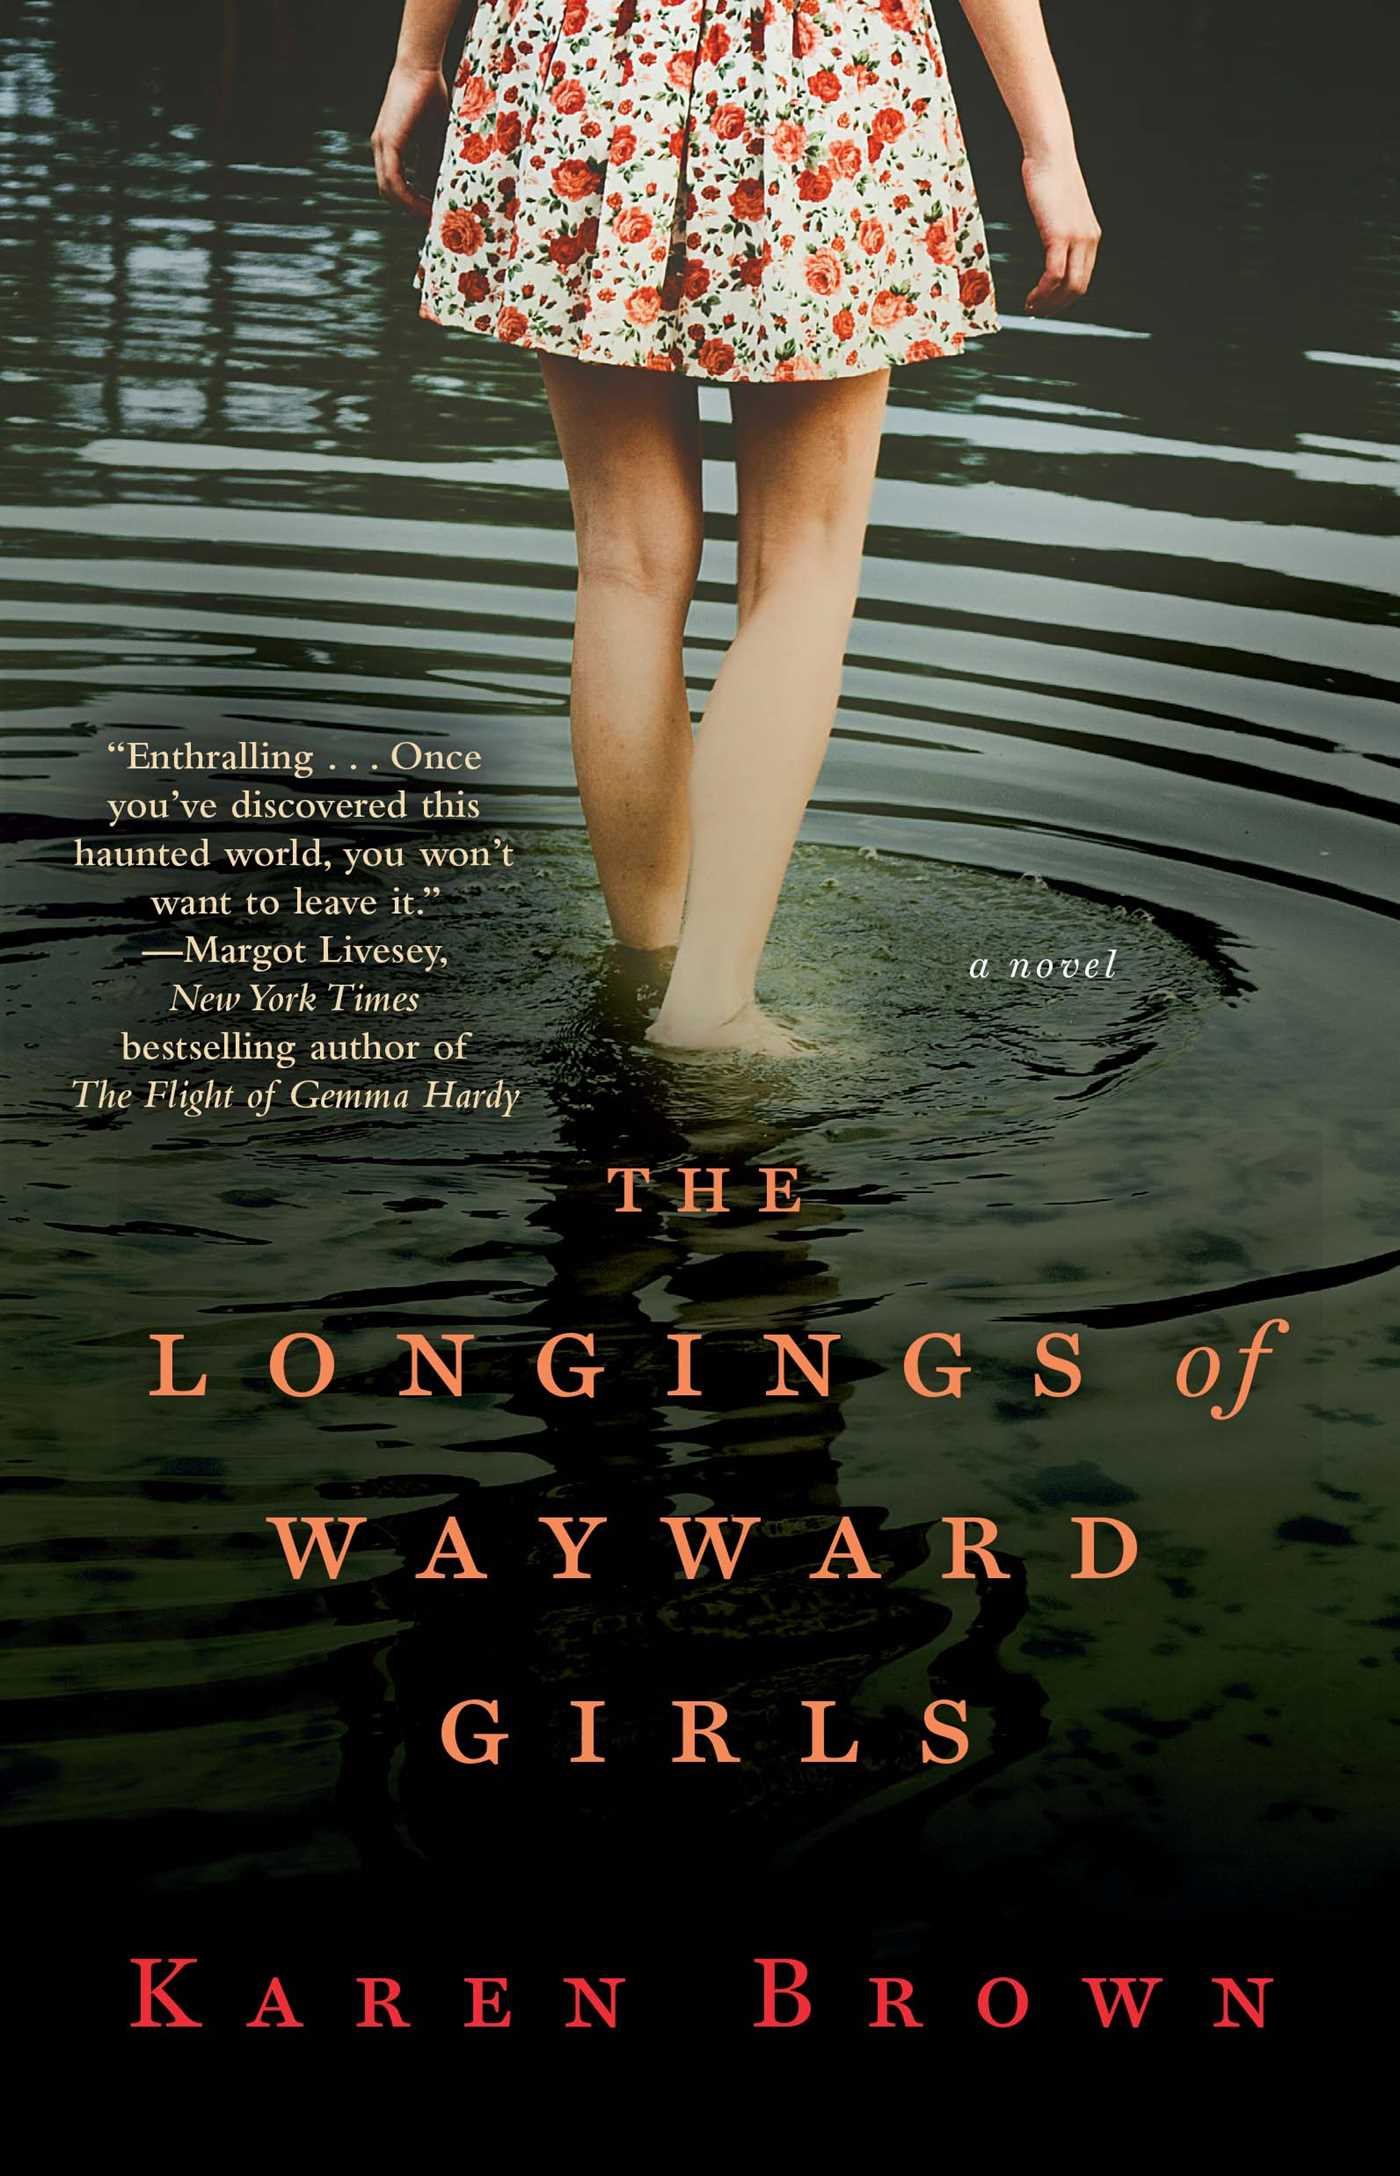 The longings of wayward girls 9781476724911 hr